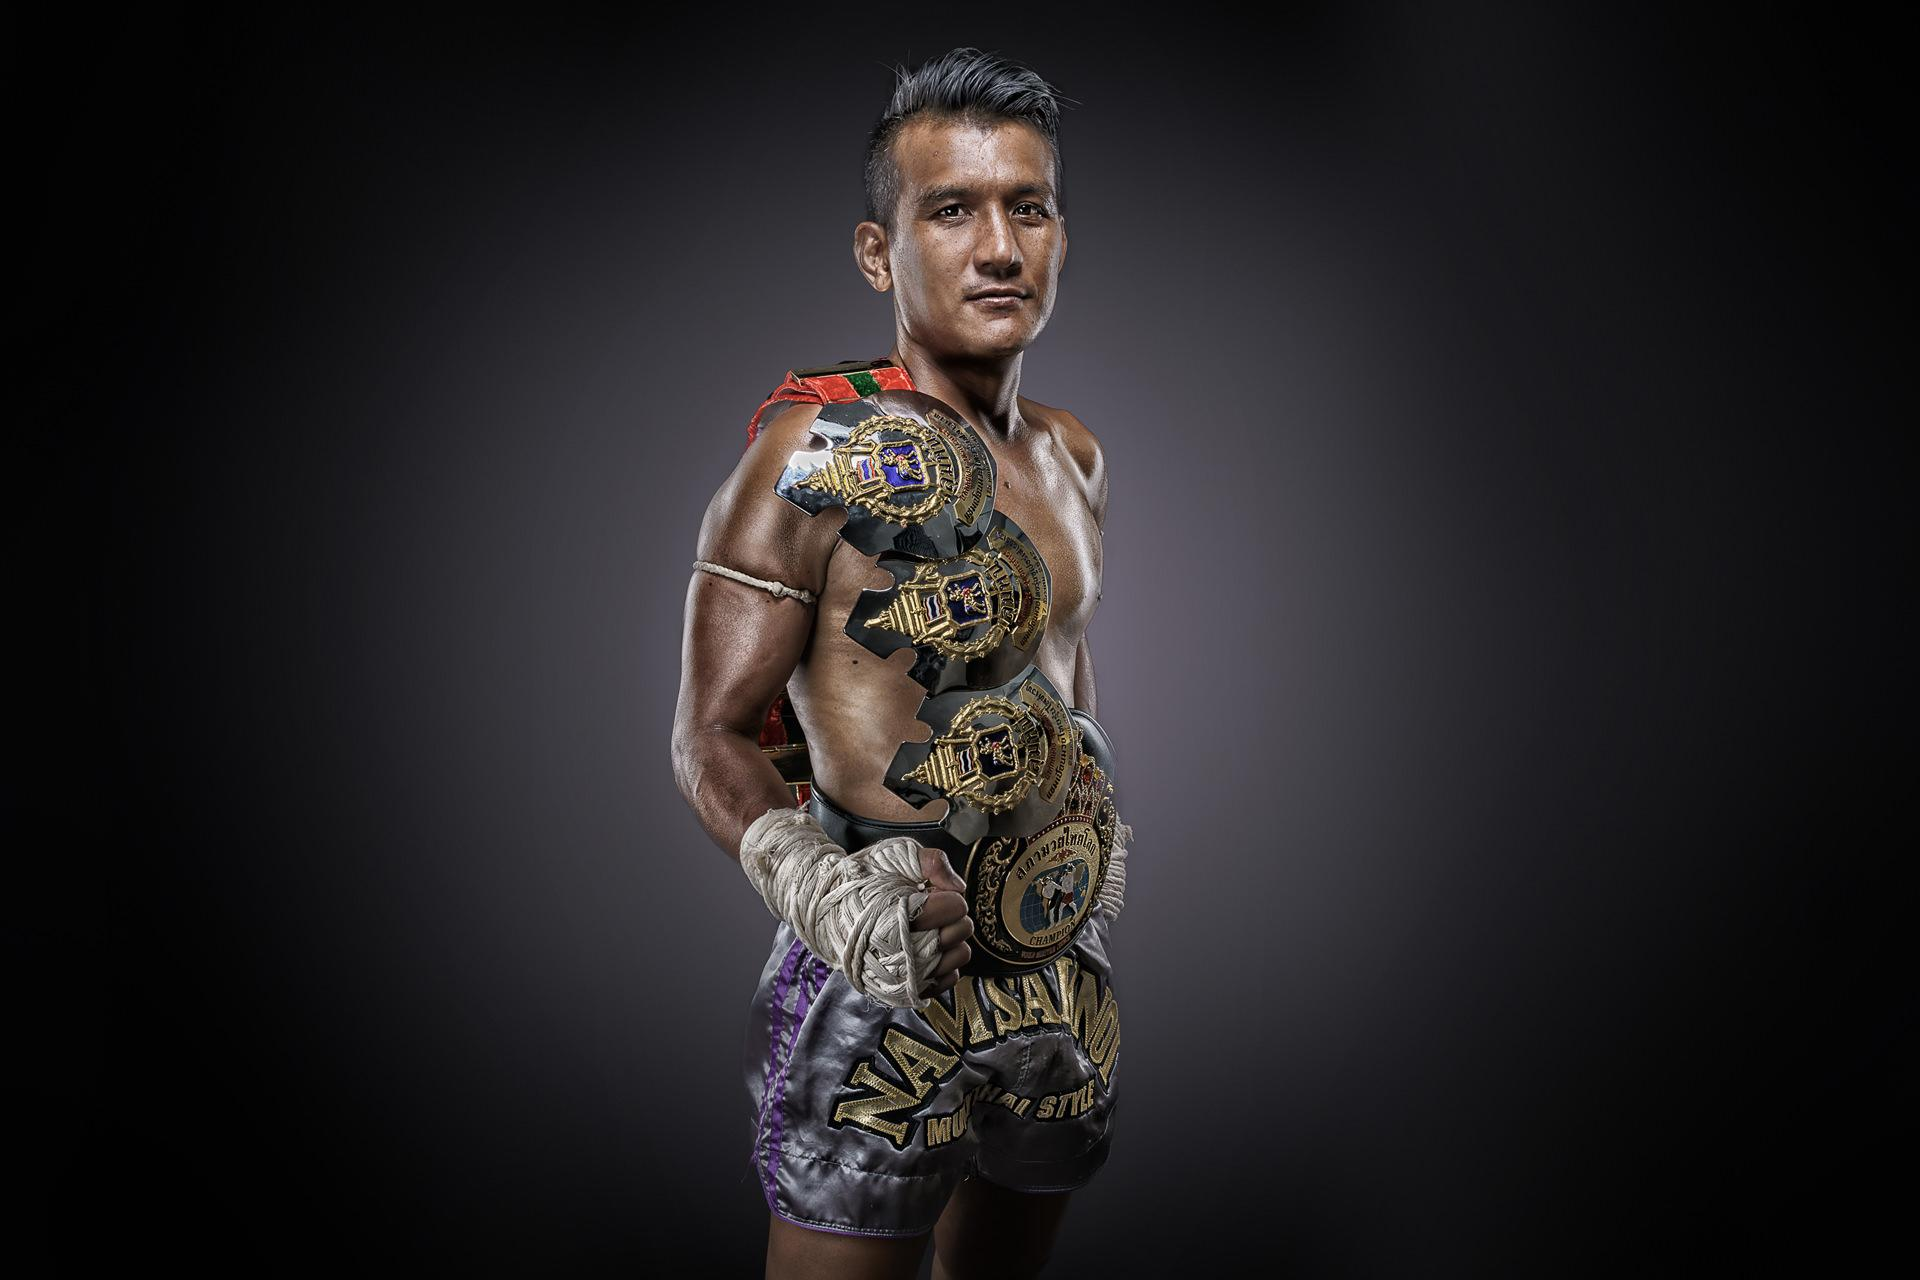 Namsaknoi Muay Thai Champion profile photo in studio